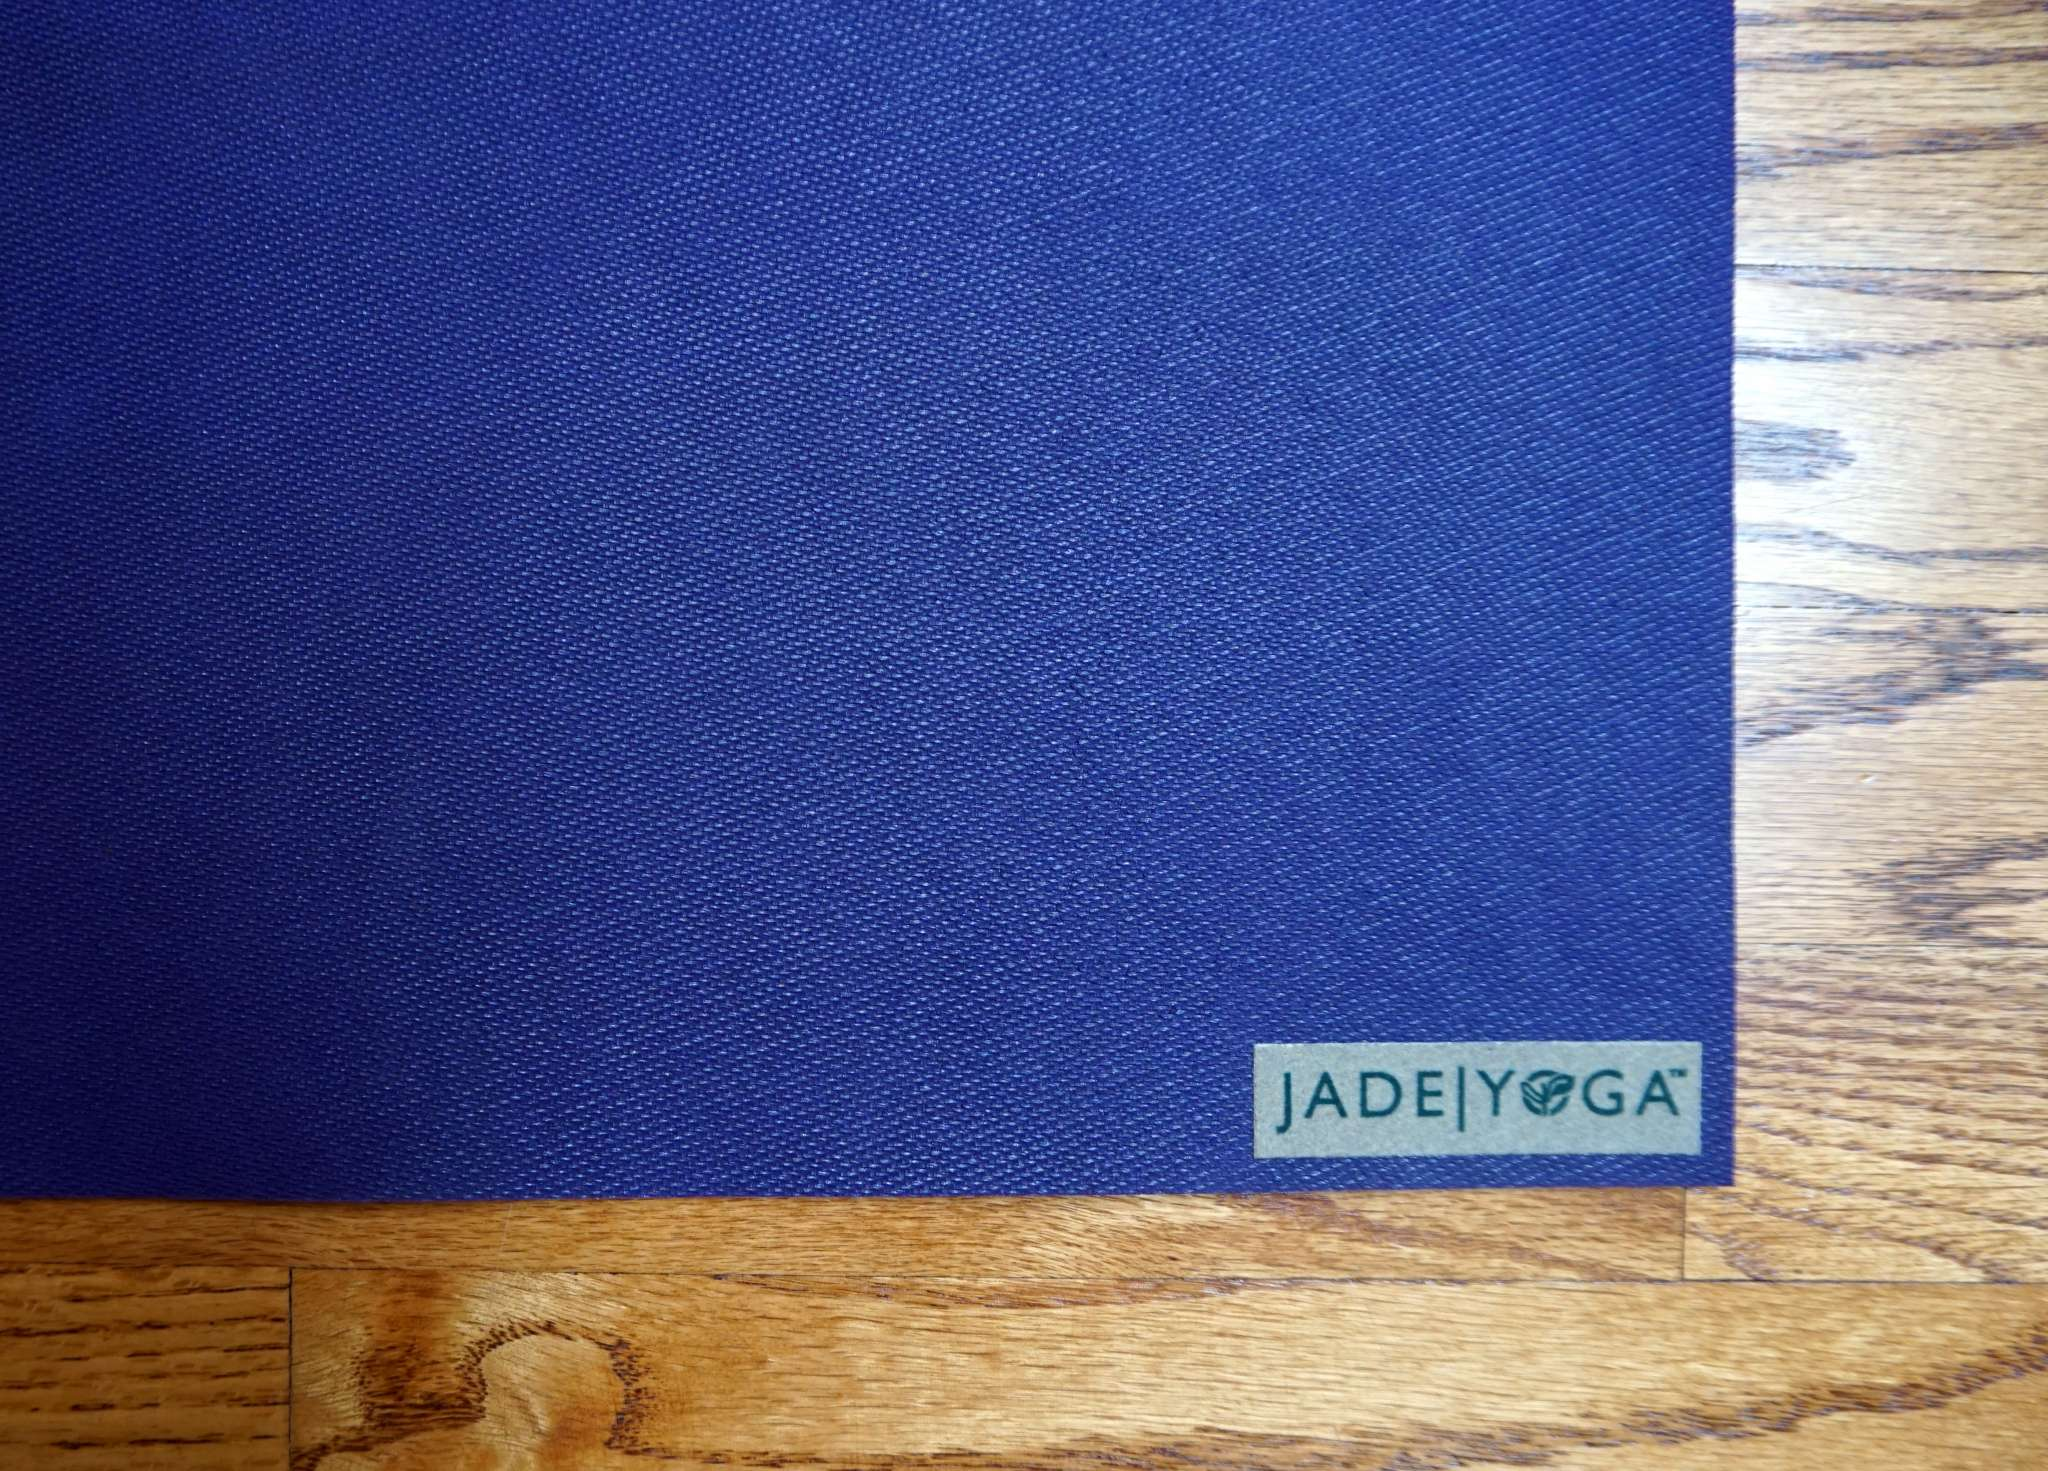 eco the jadeyoga friendly colourfan dec best yoga canada mat mats jade